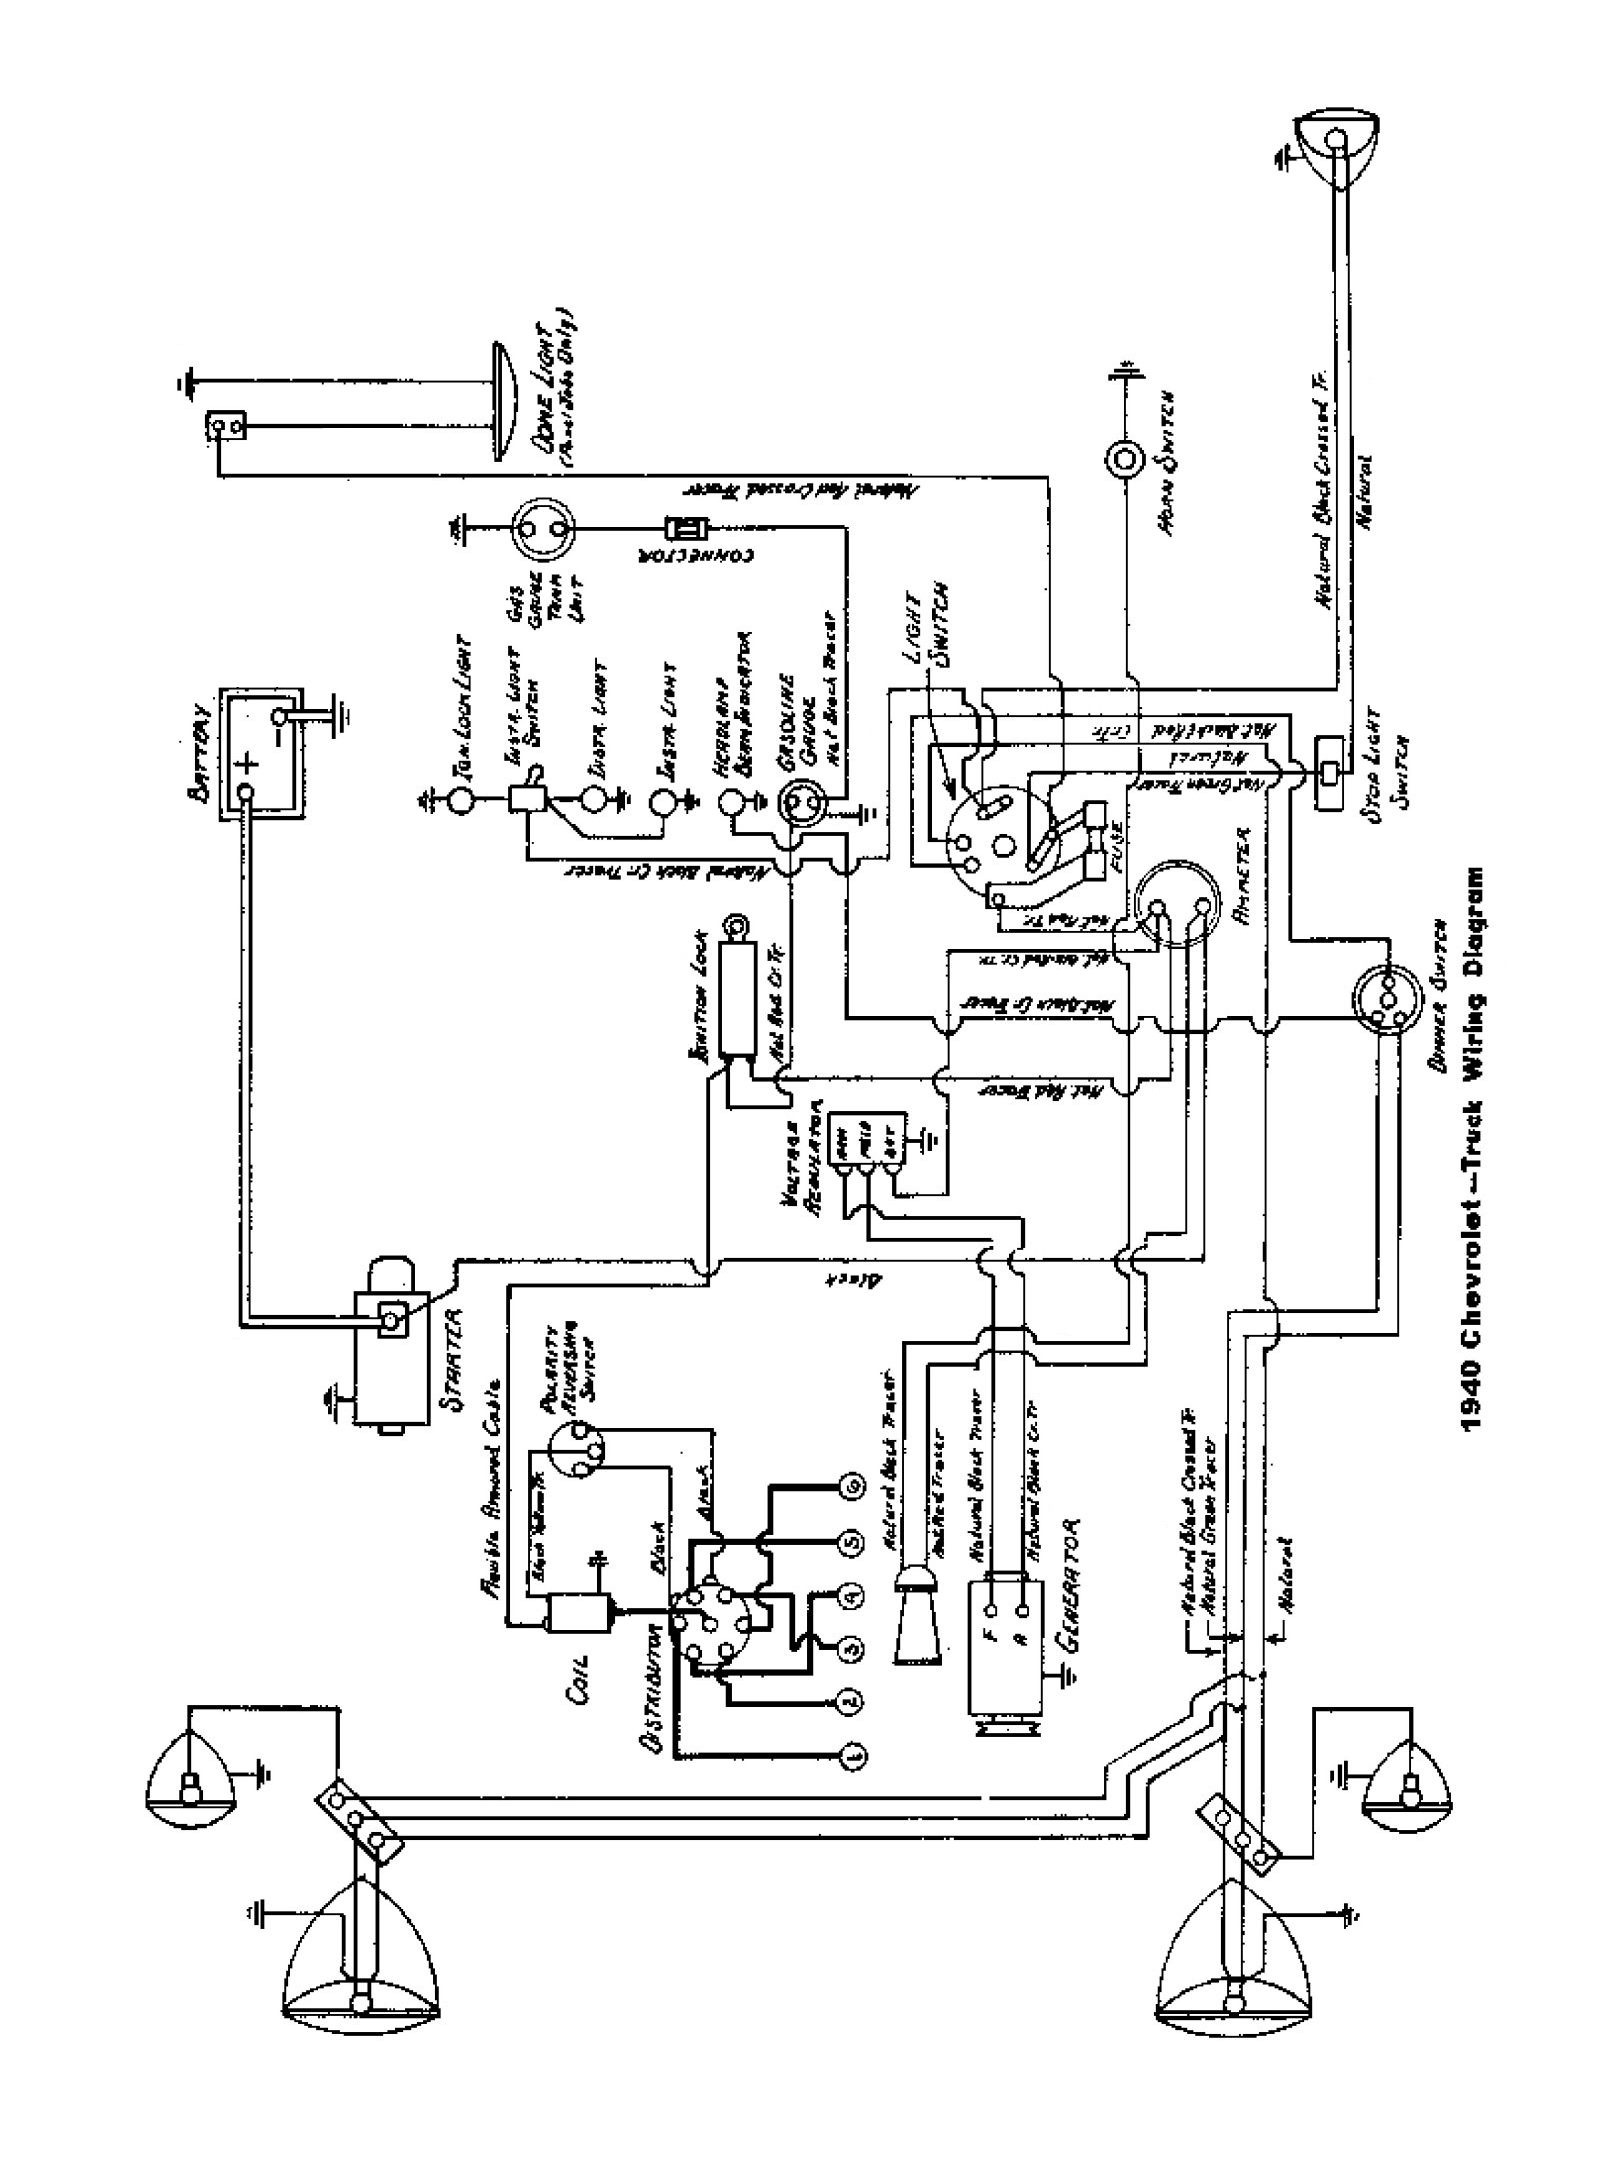 Wiring on mercruiser electric fuel pump wiring diagram